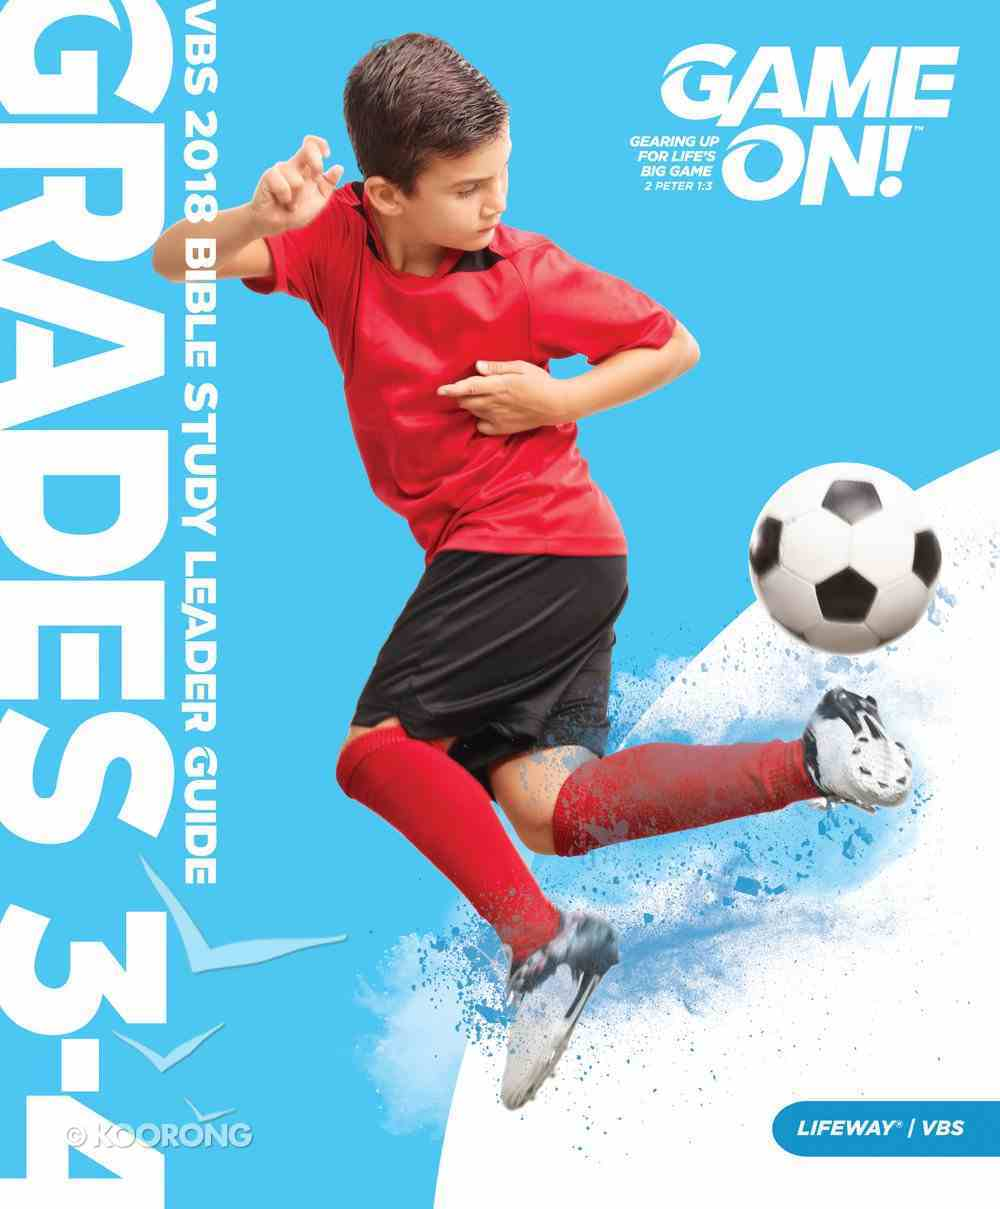 Vbs 2018 Game On! Grades 3-4 (Bible Study Leader Guide) (Vbs 2018 Game On! Series) Paperback